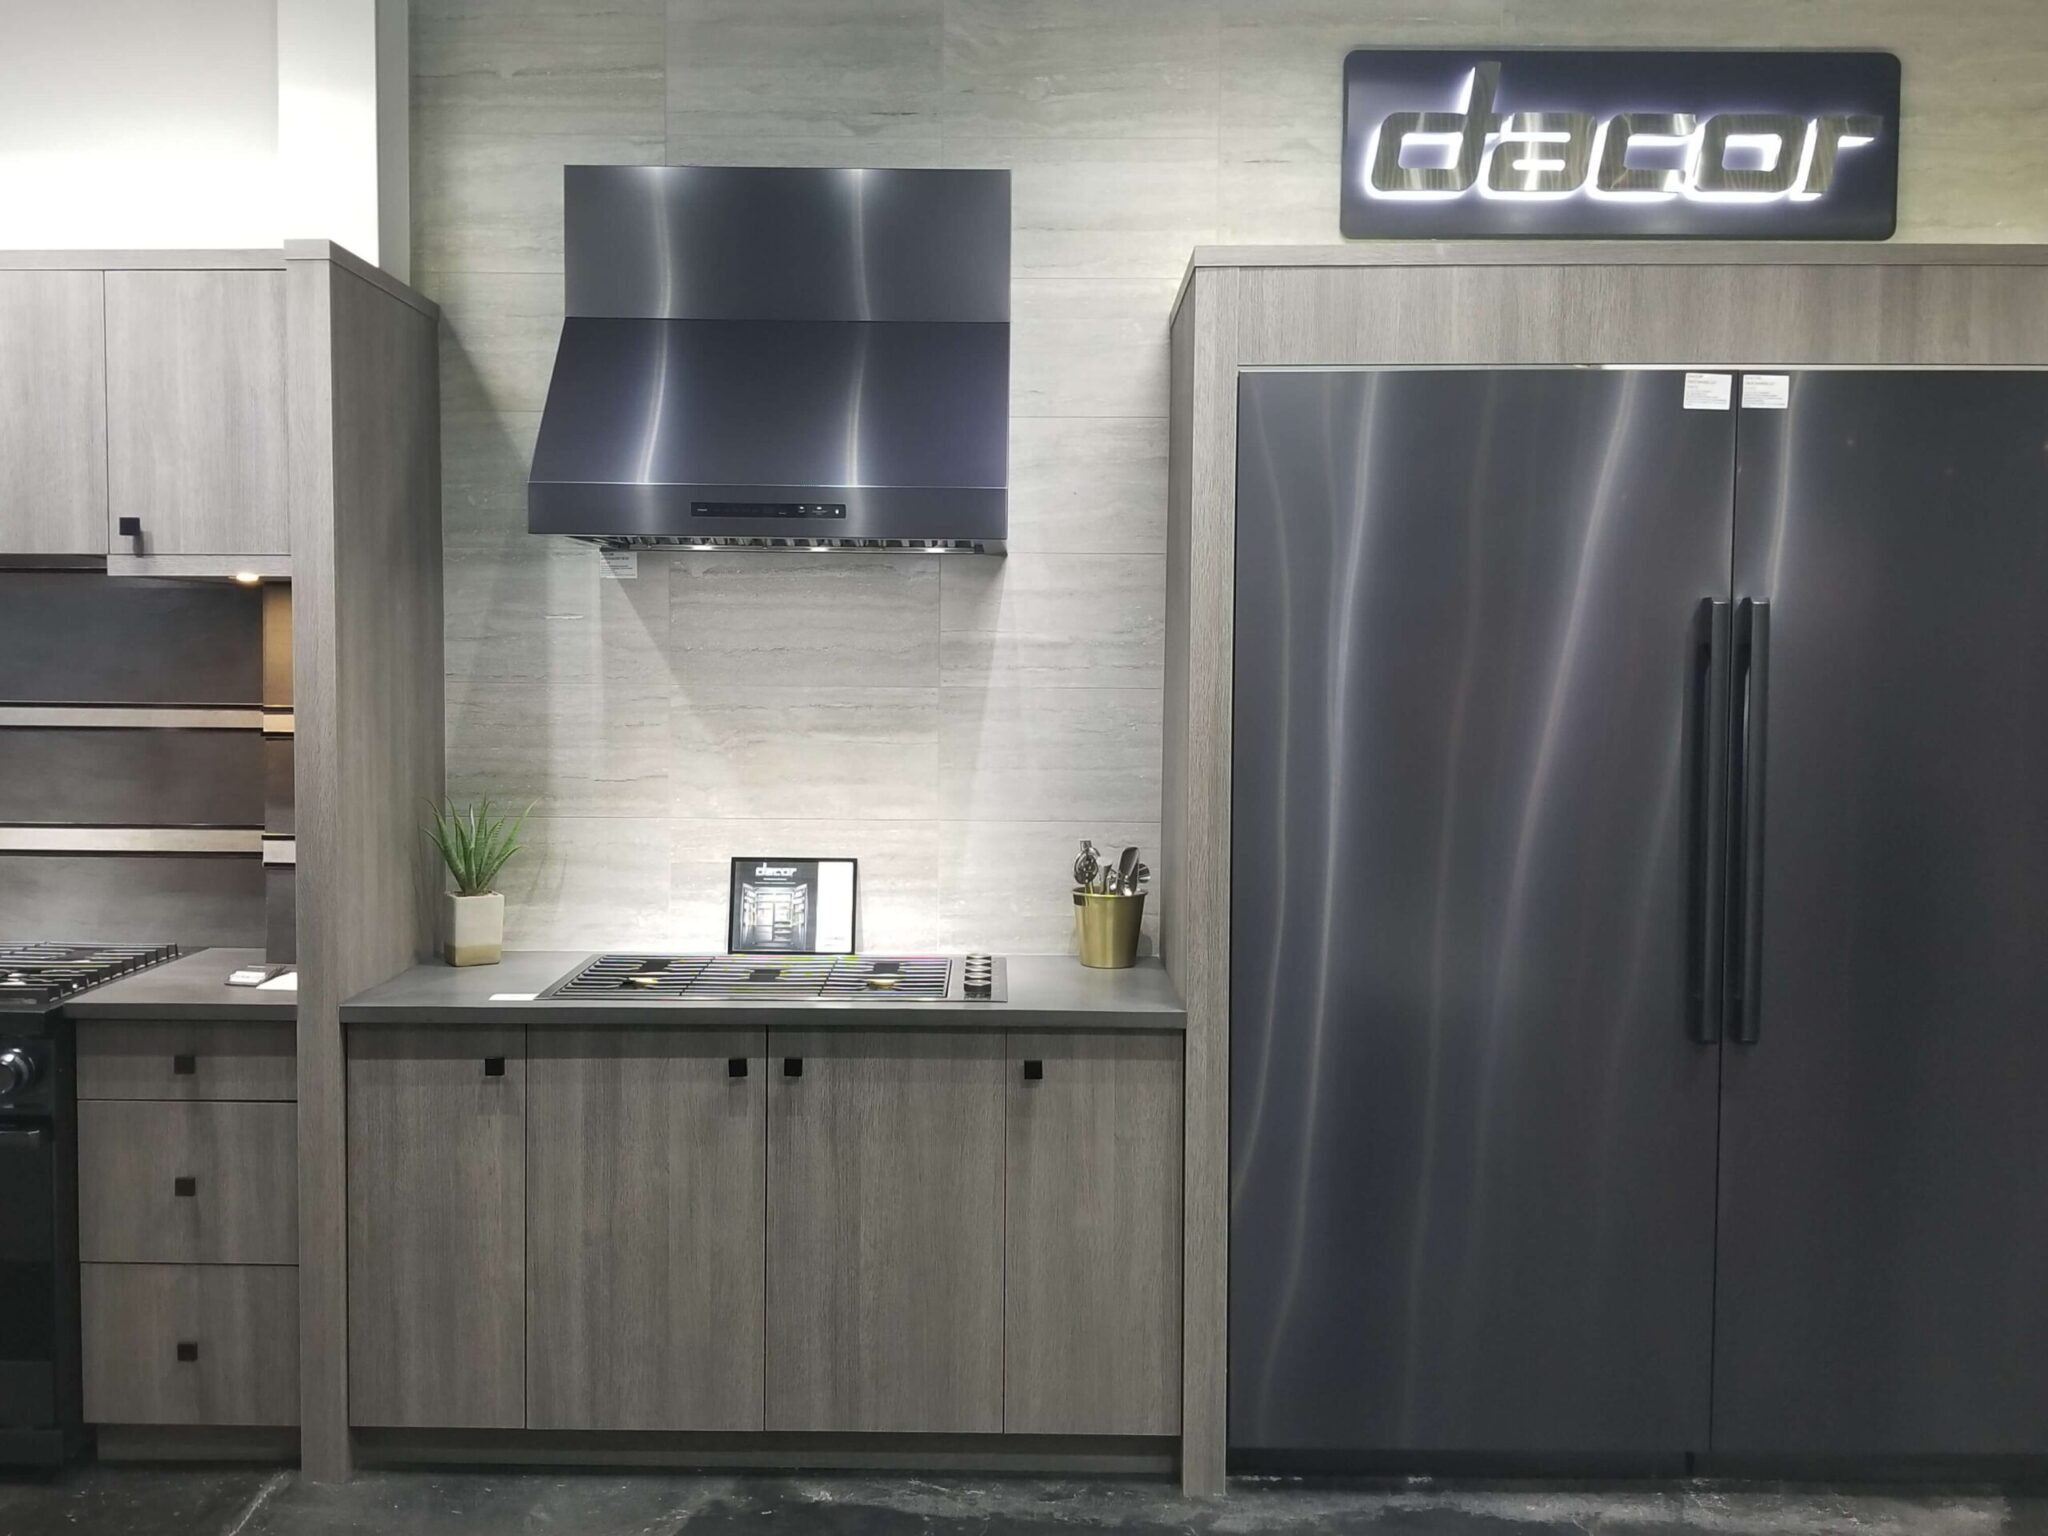 Dacor Refrigerator, Cooktop, and Vent Hood